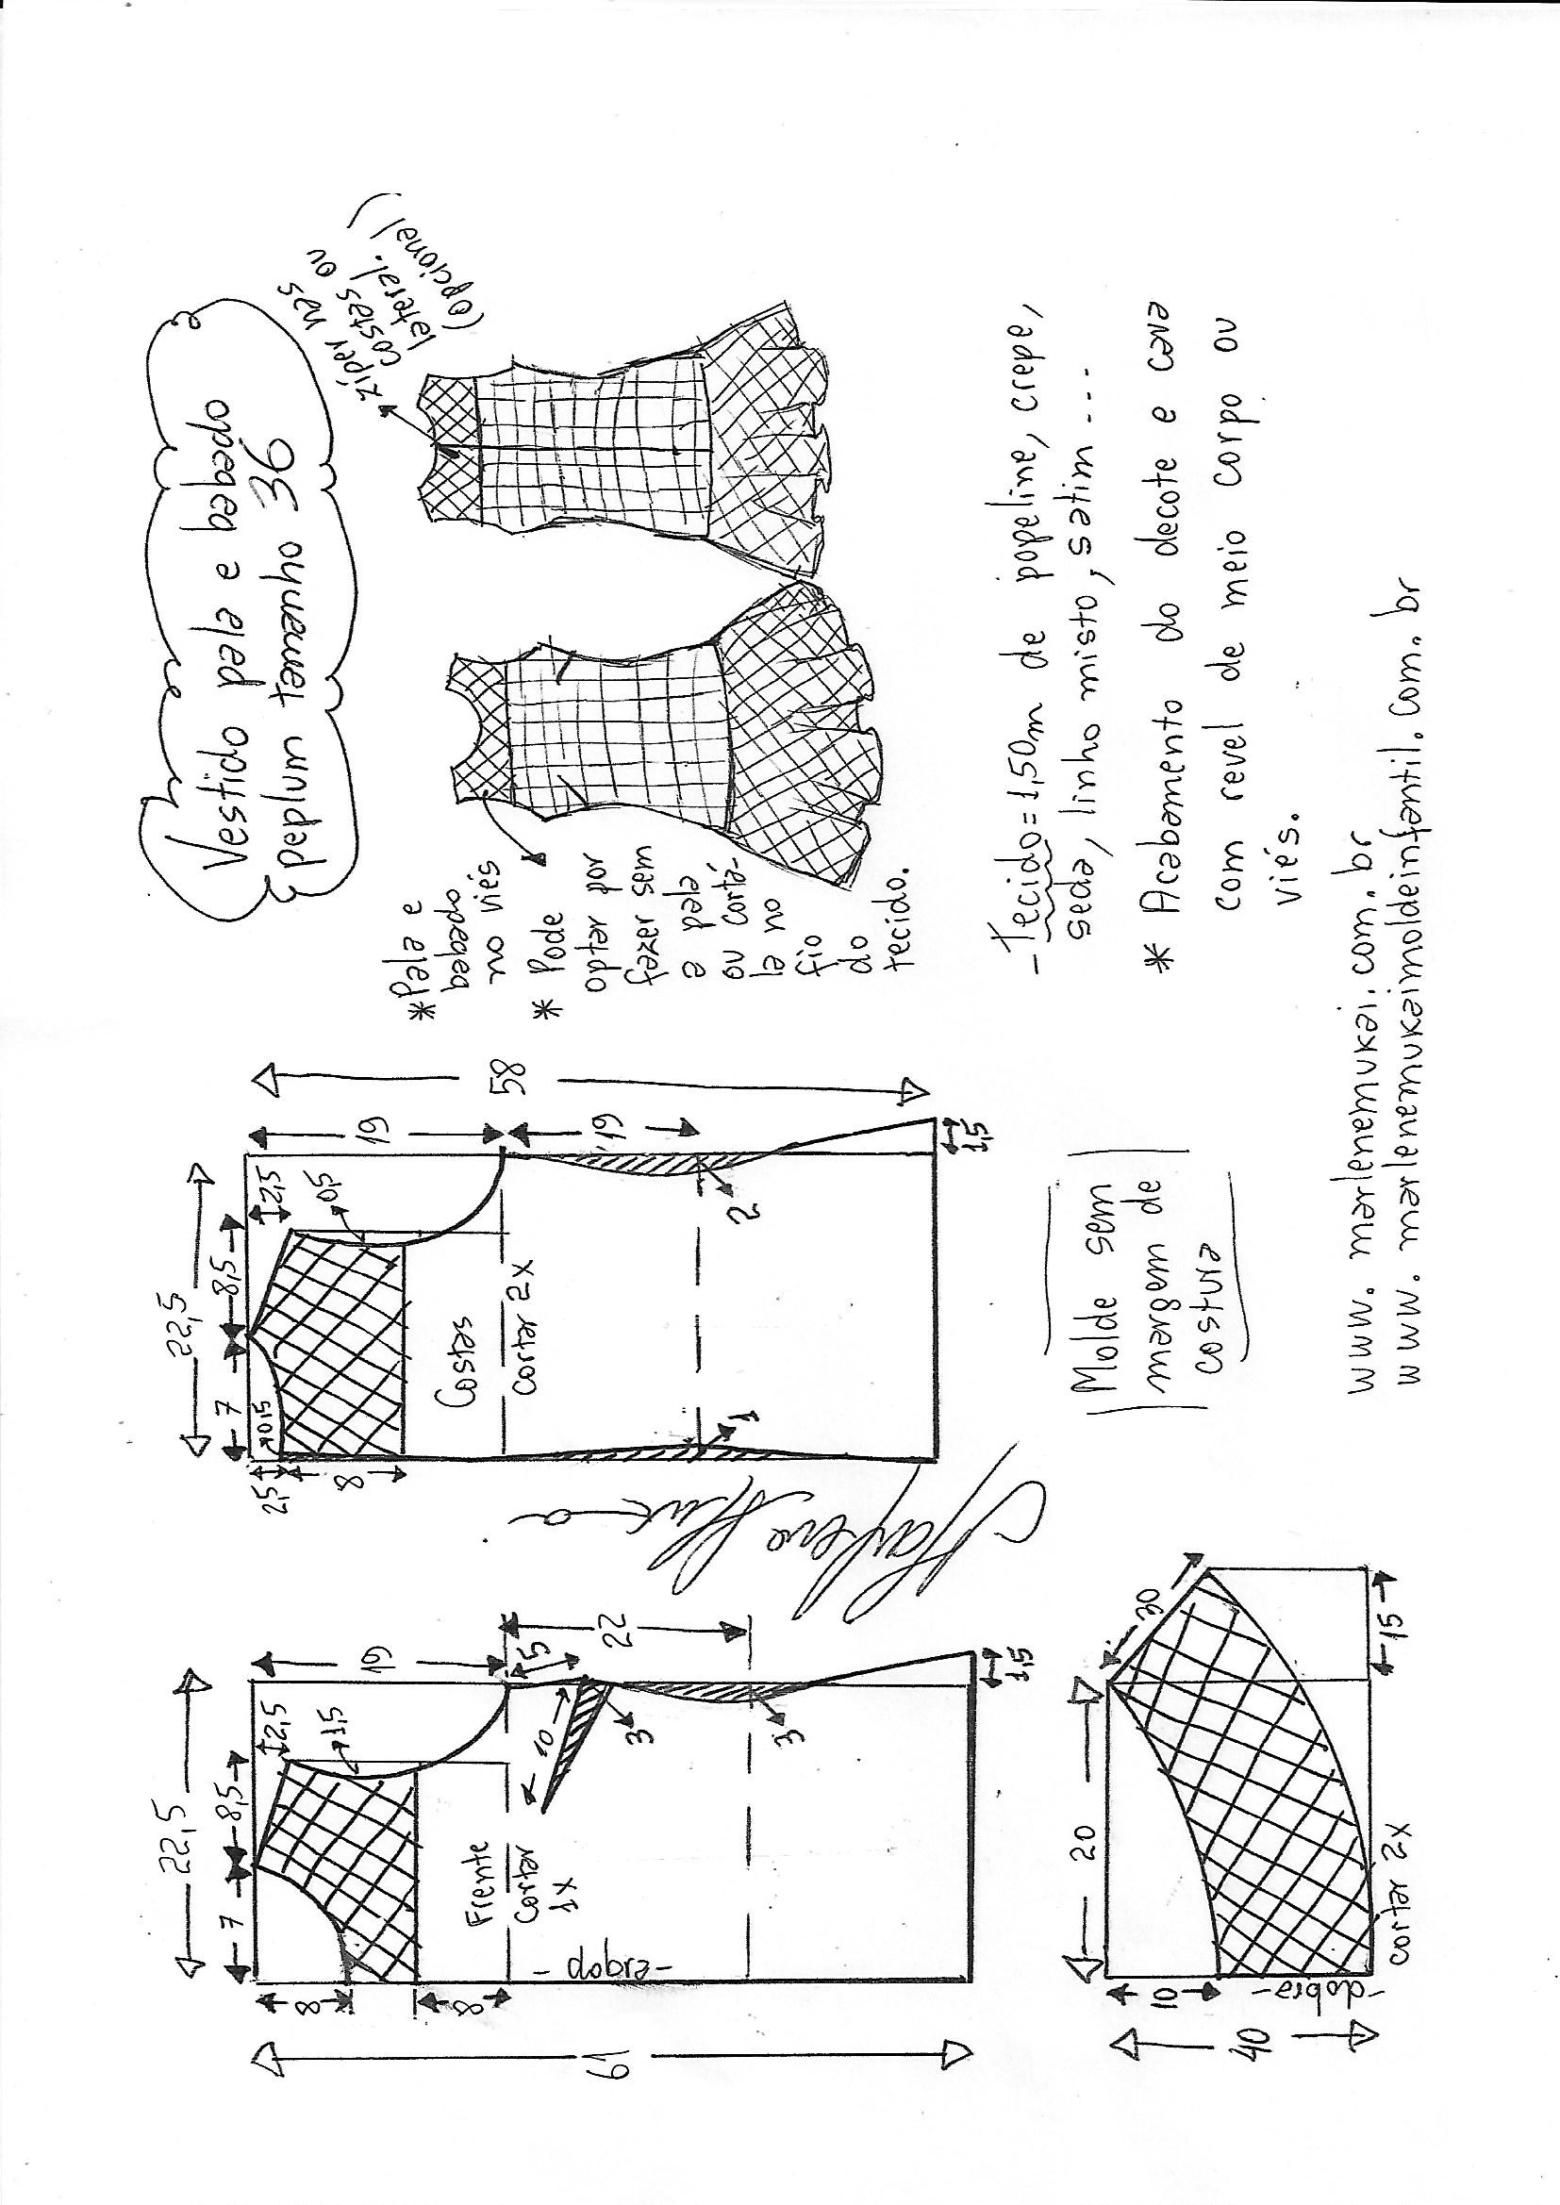 Visite o post para mais. | strihy | Pinterest | Patterns, Sewing ...